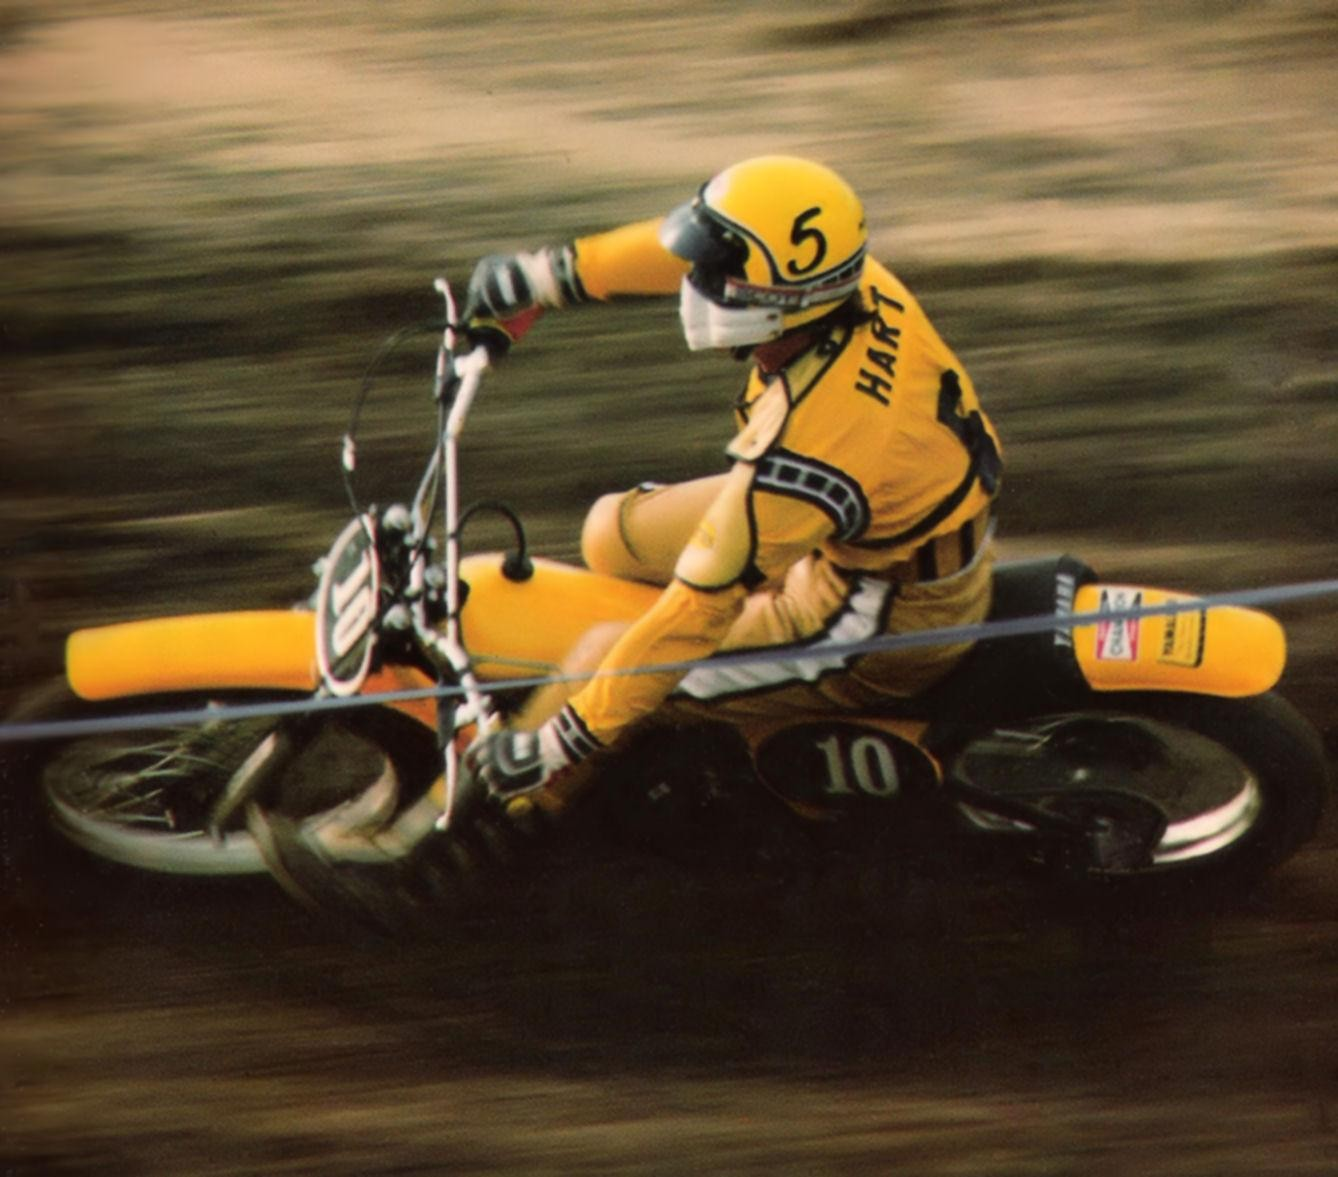 Tim Hart 1974 or 1975 - Stoneface - Motocross Pictures - Vital MX